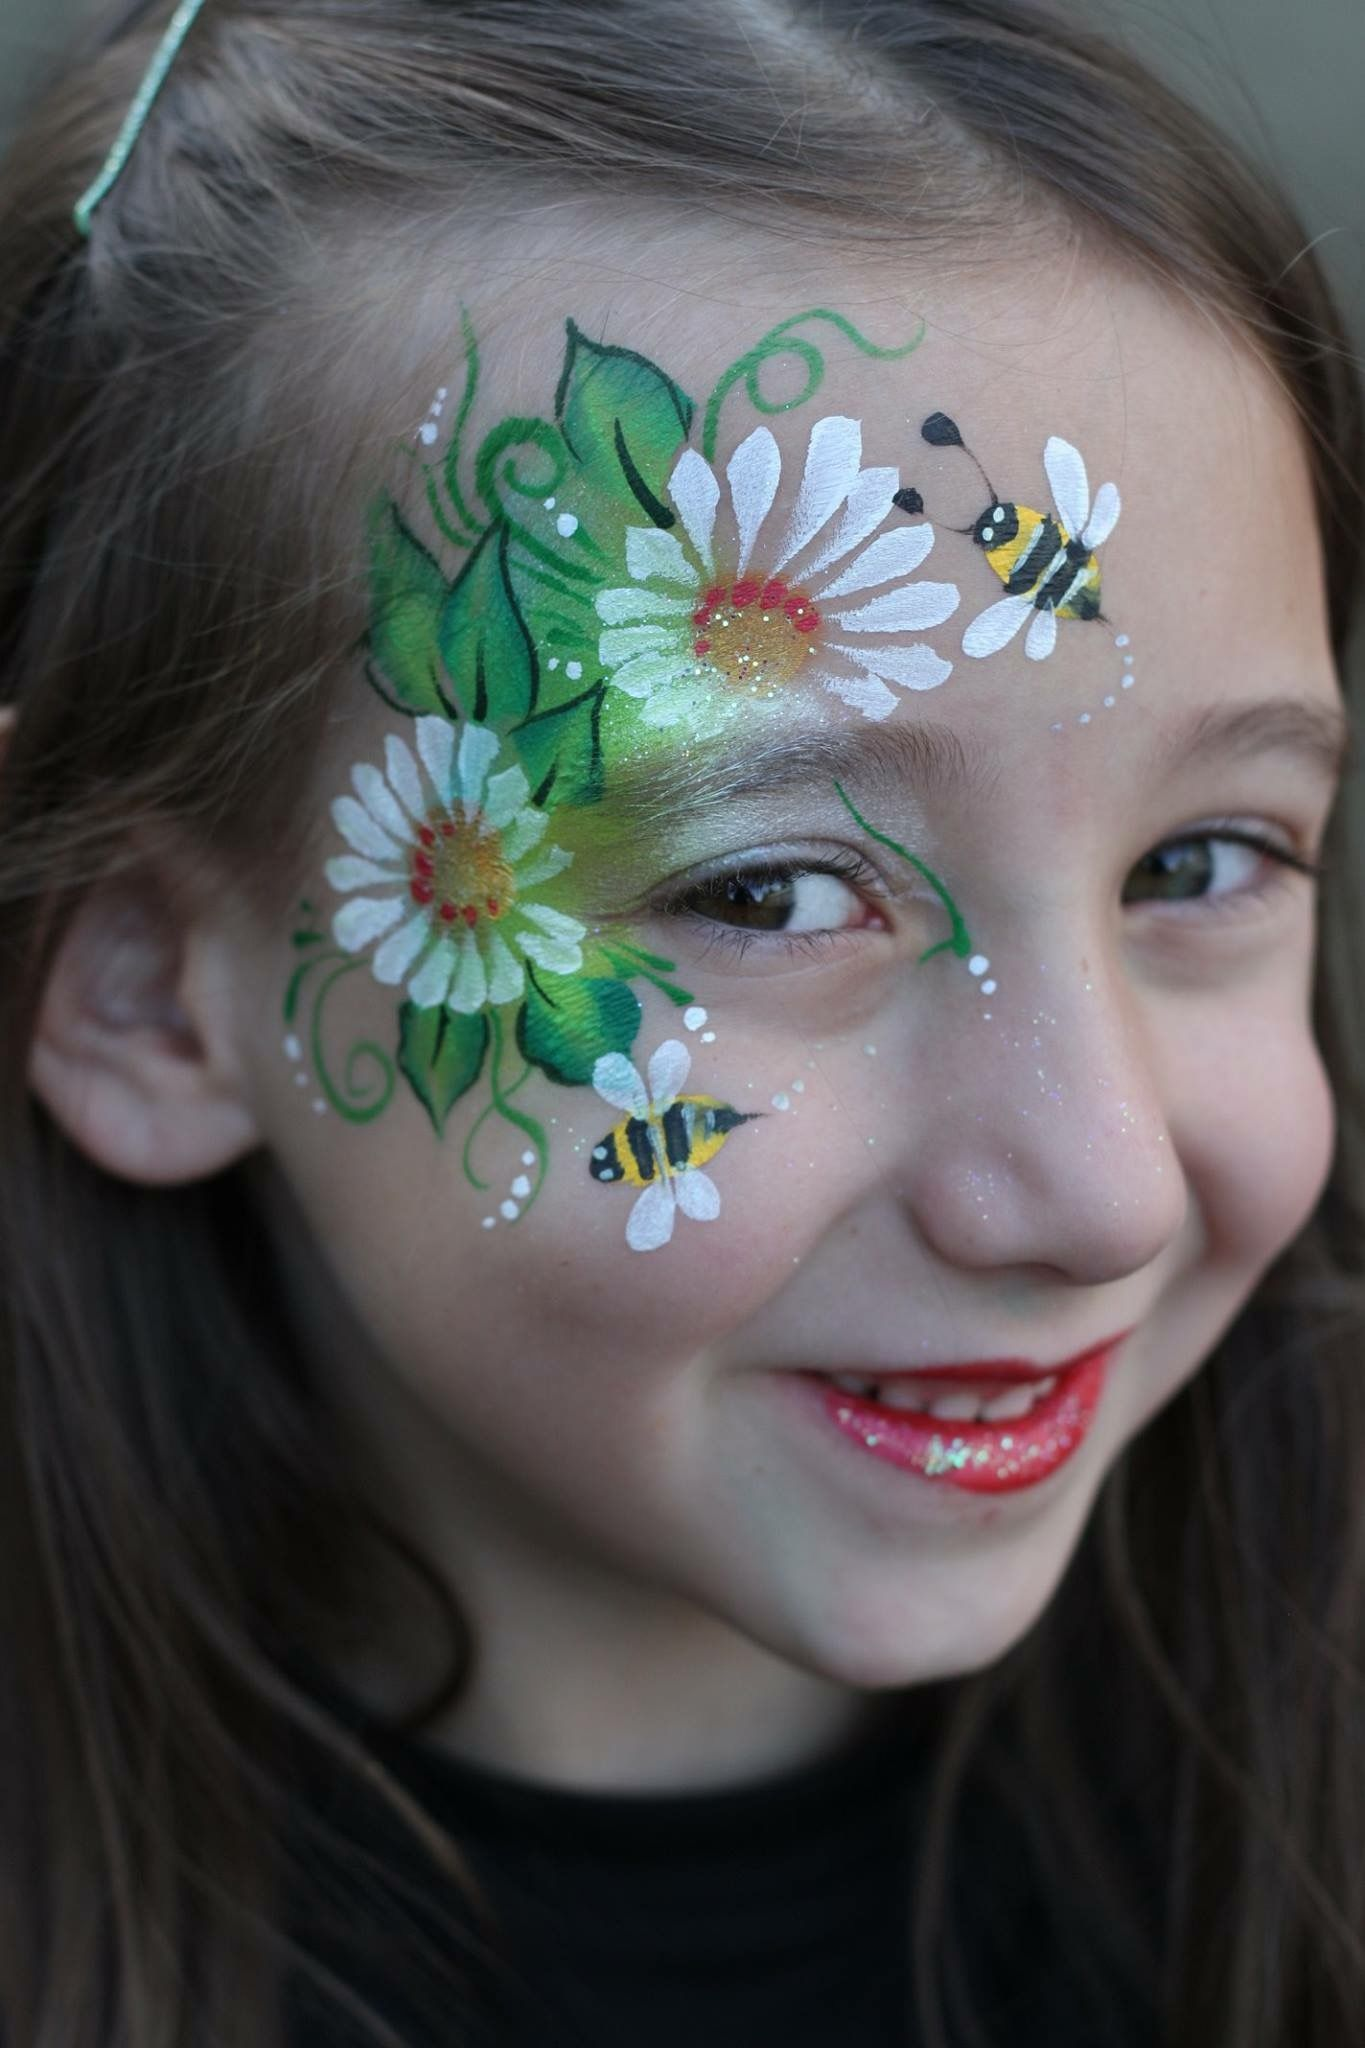 Pin by +972523417523 on Face paints | Face painting ...